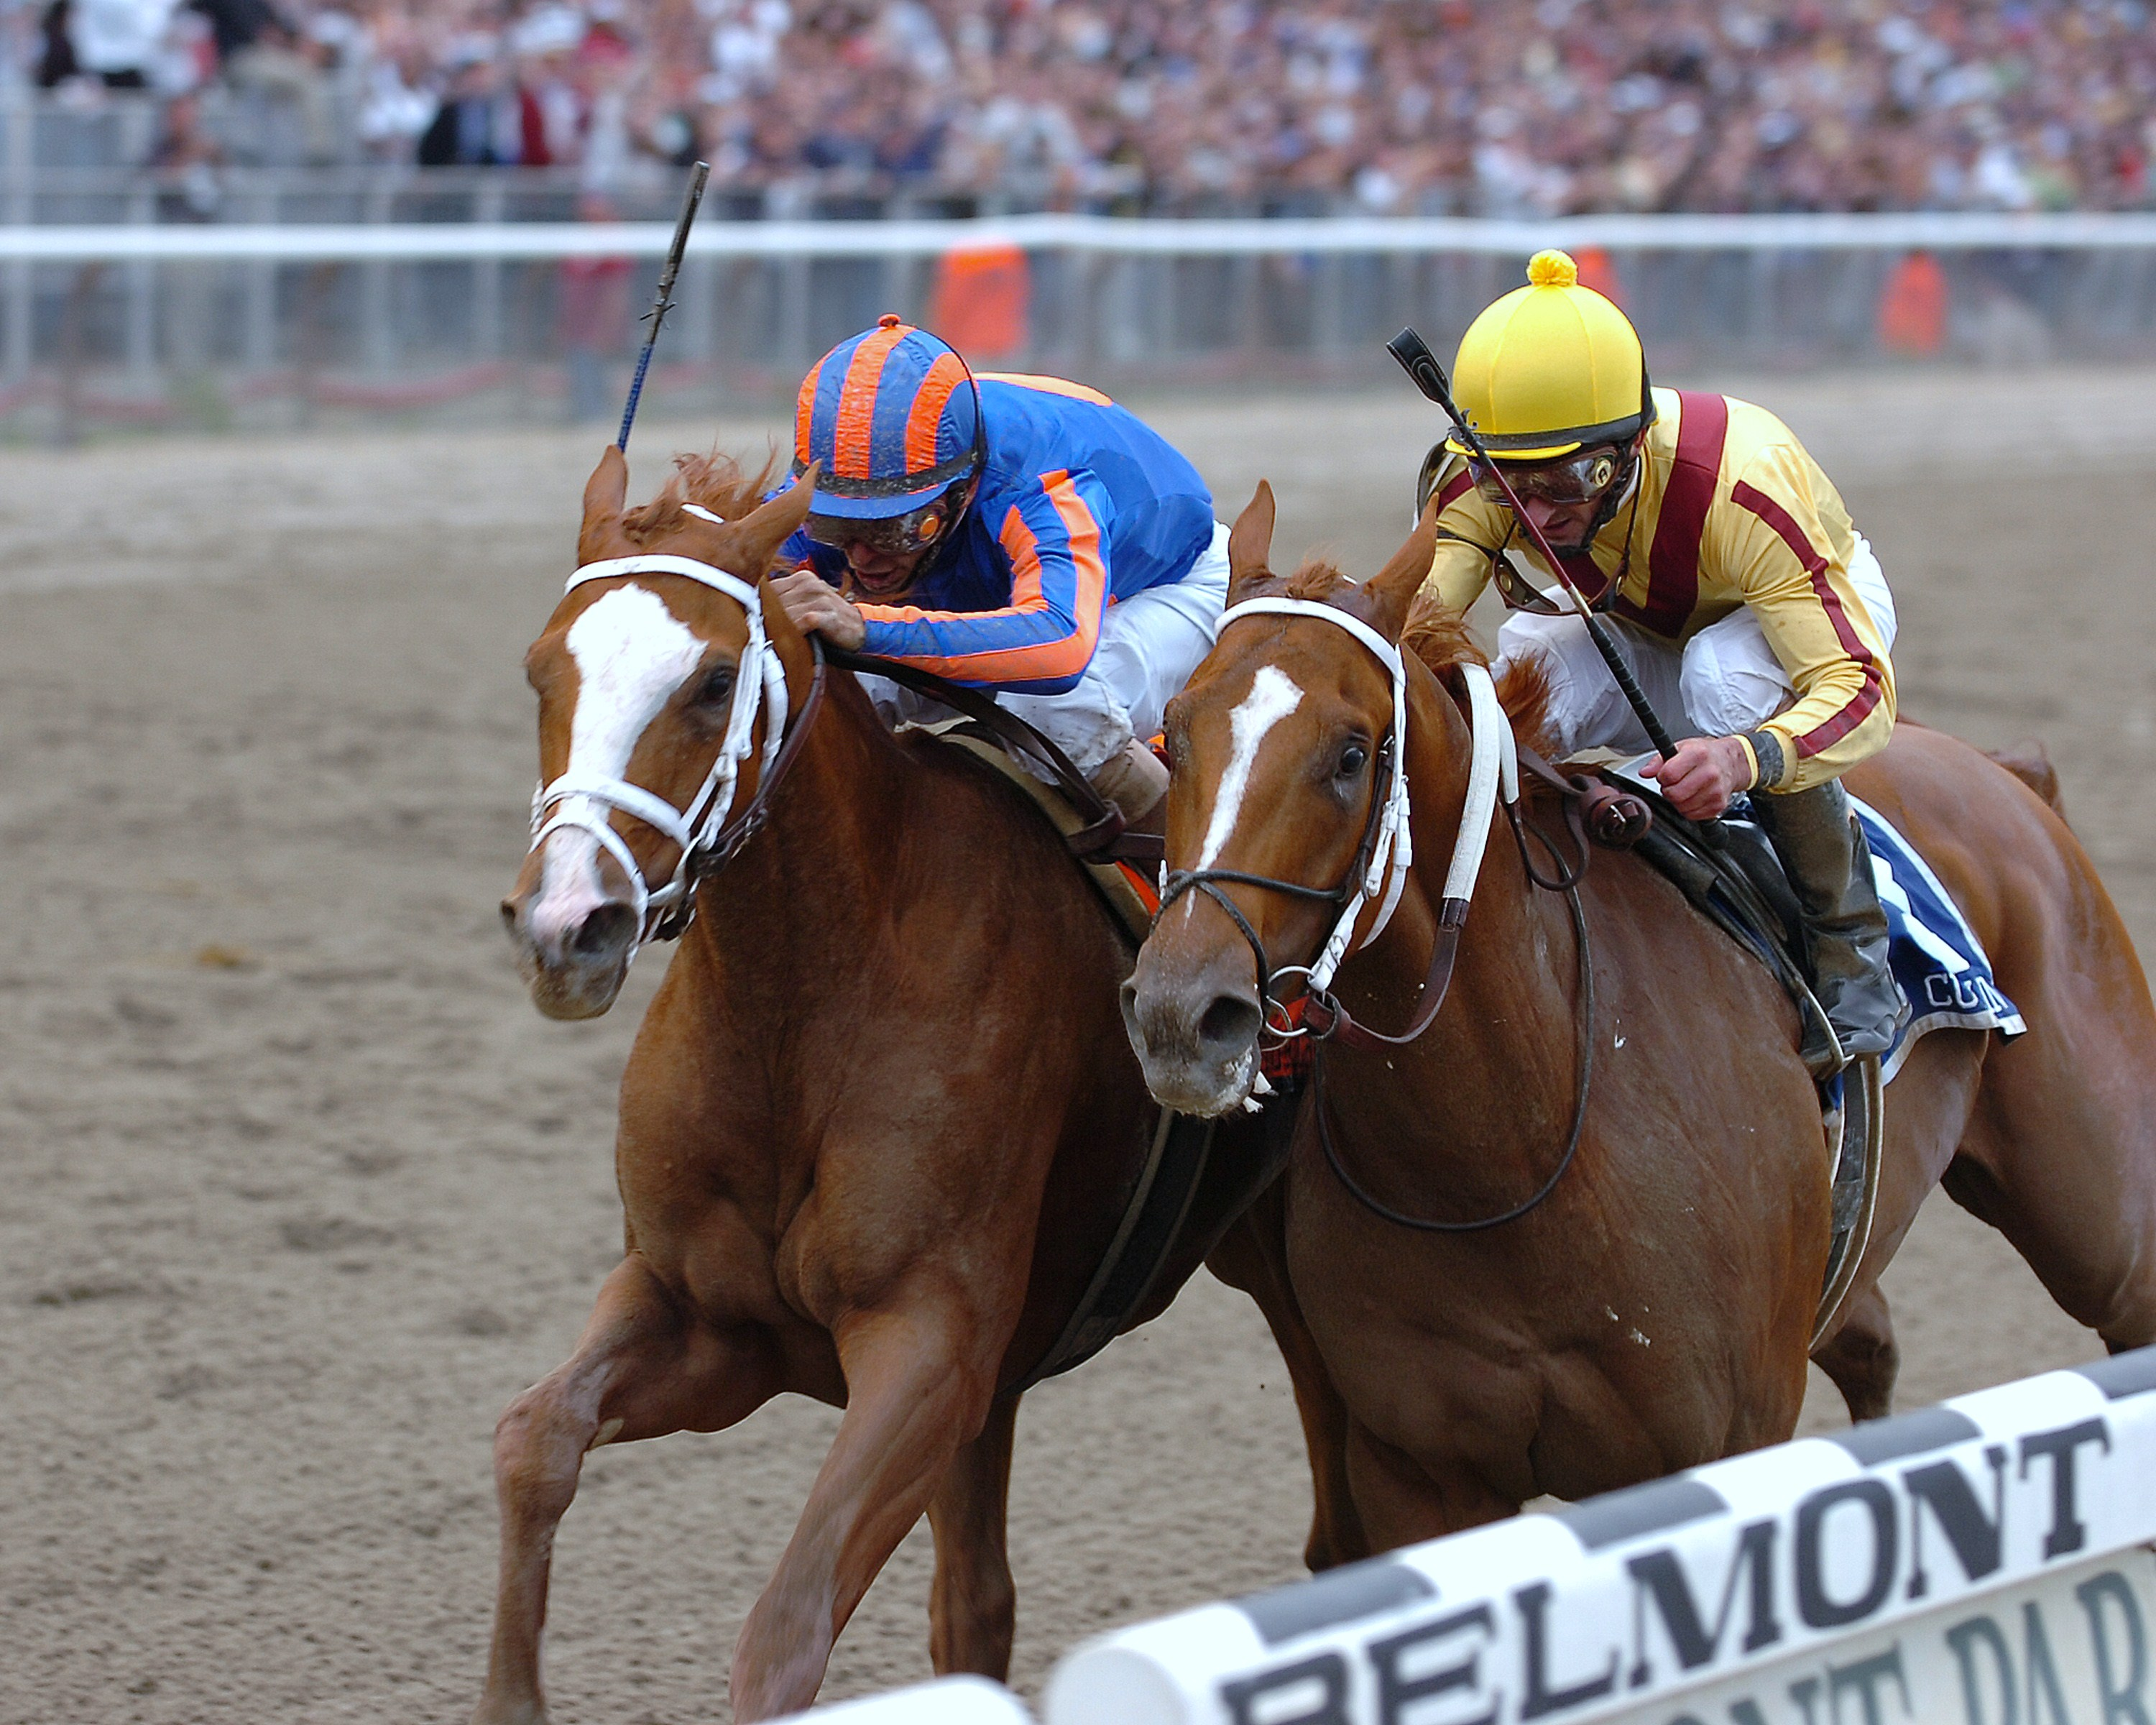 Rags to Riches, left, with John Velazquez up, defeats Curlin to win the 2007 Belmont Stakes (NYRA)